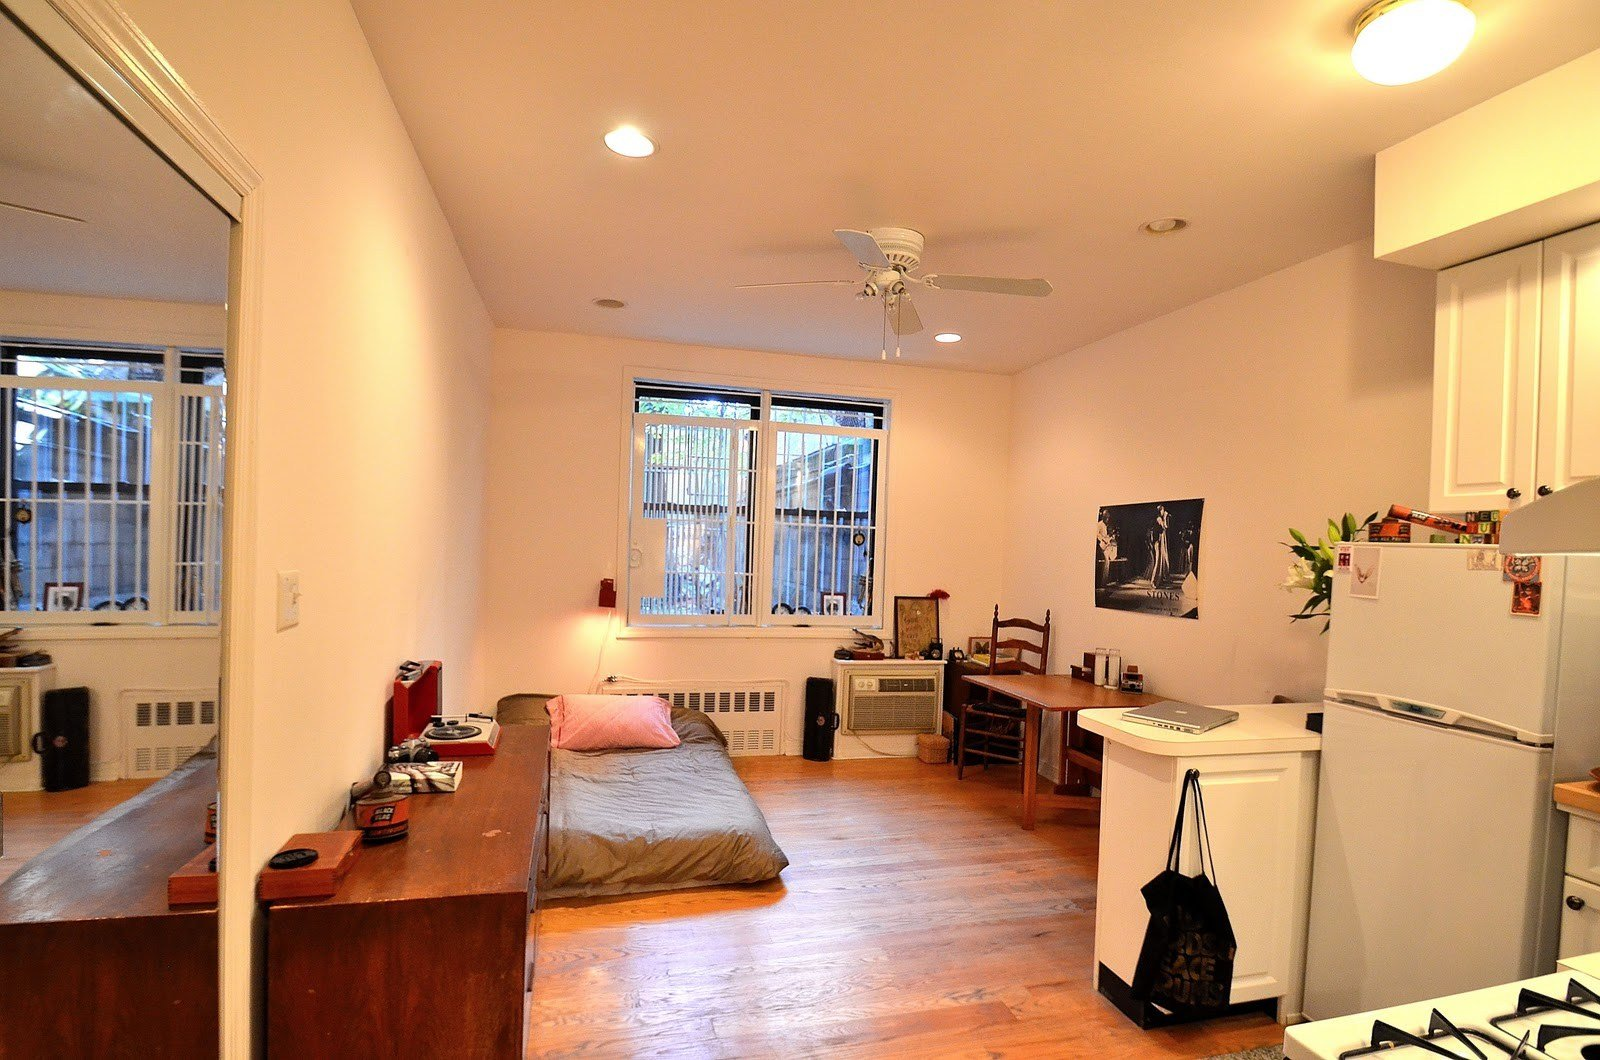 Best Studio Apartments For Rent In Queens Village Ny Latest Bestapartment 2018 With Pictures